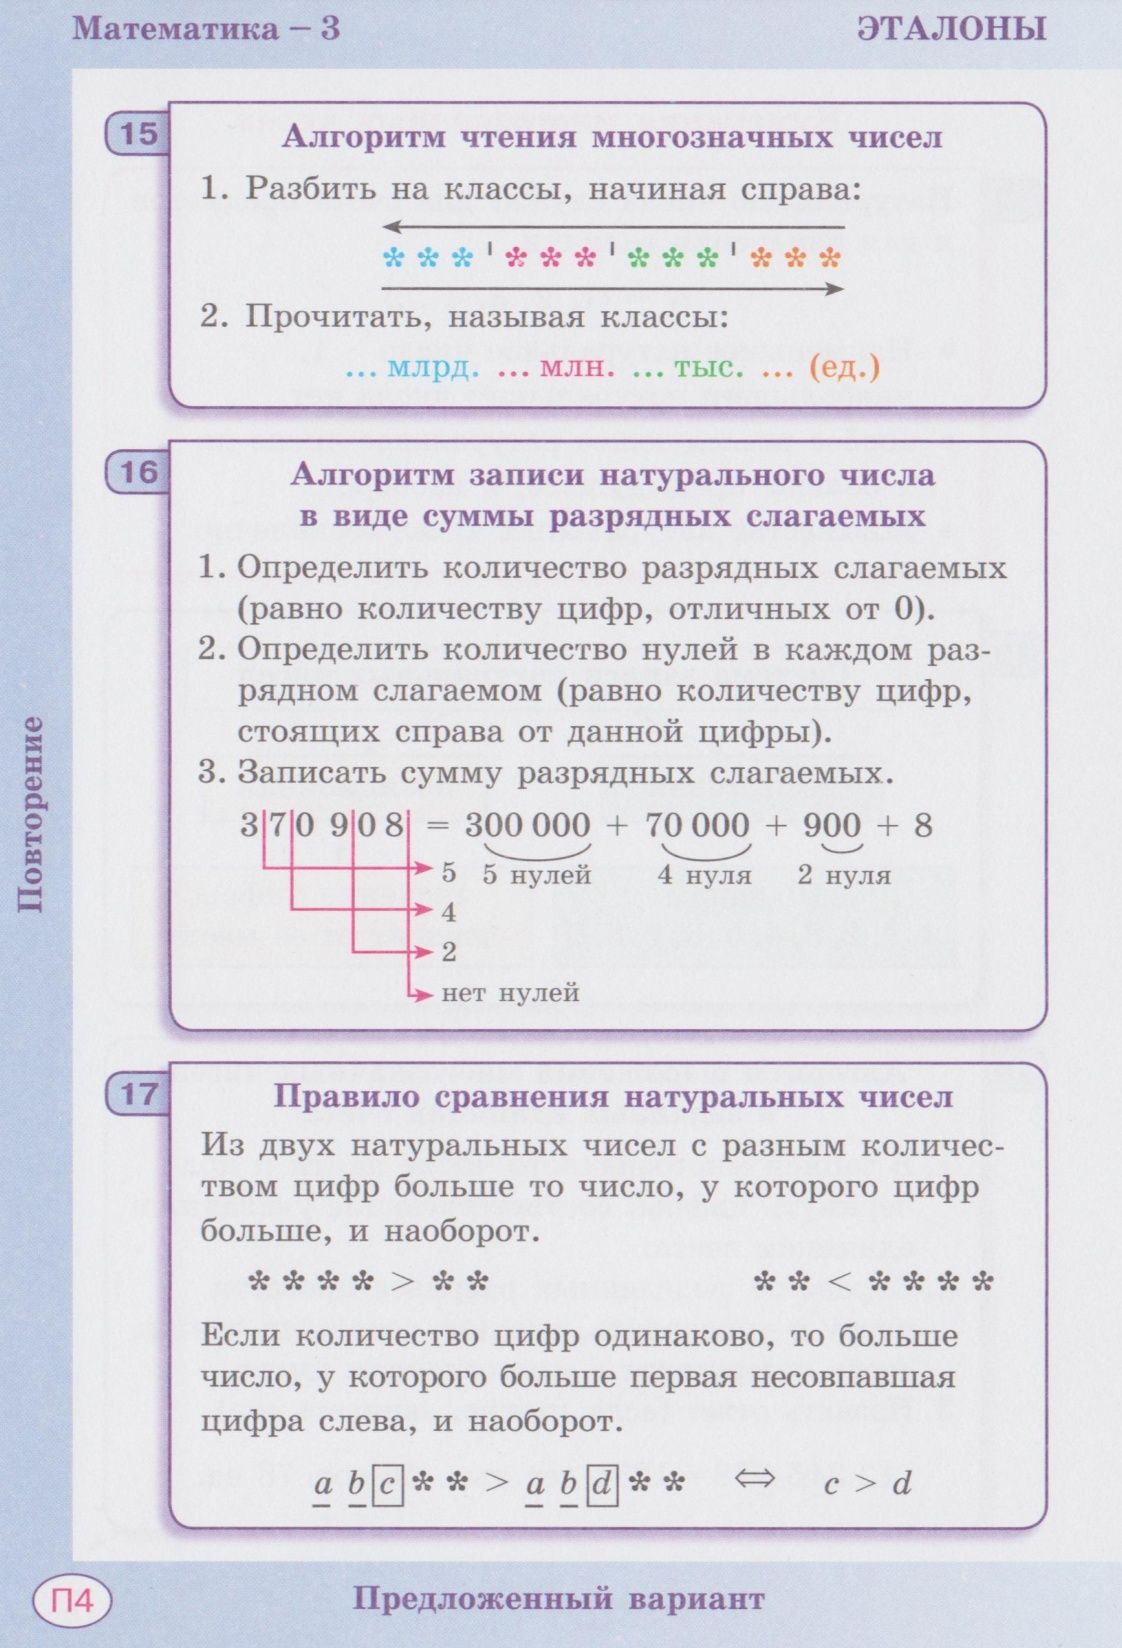 C:\Users\Настя\Pictures\2012-09-08 4\4 001.jpg